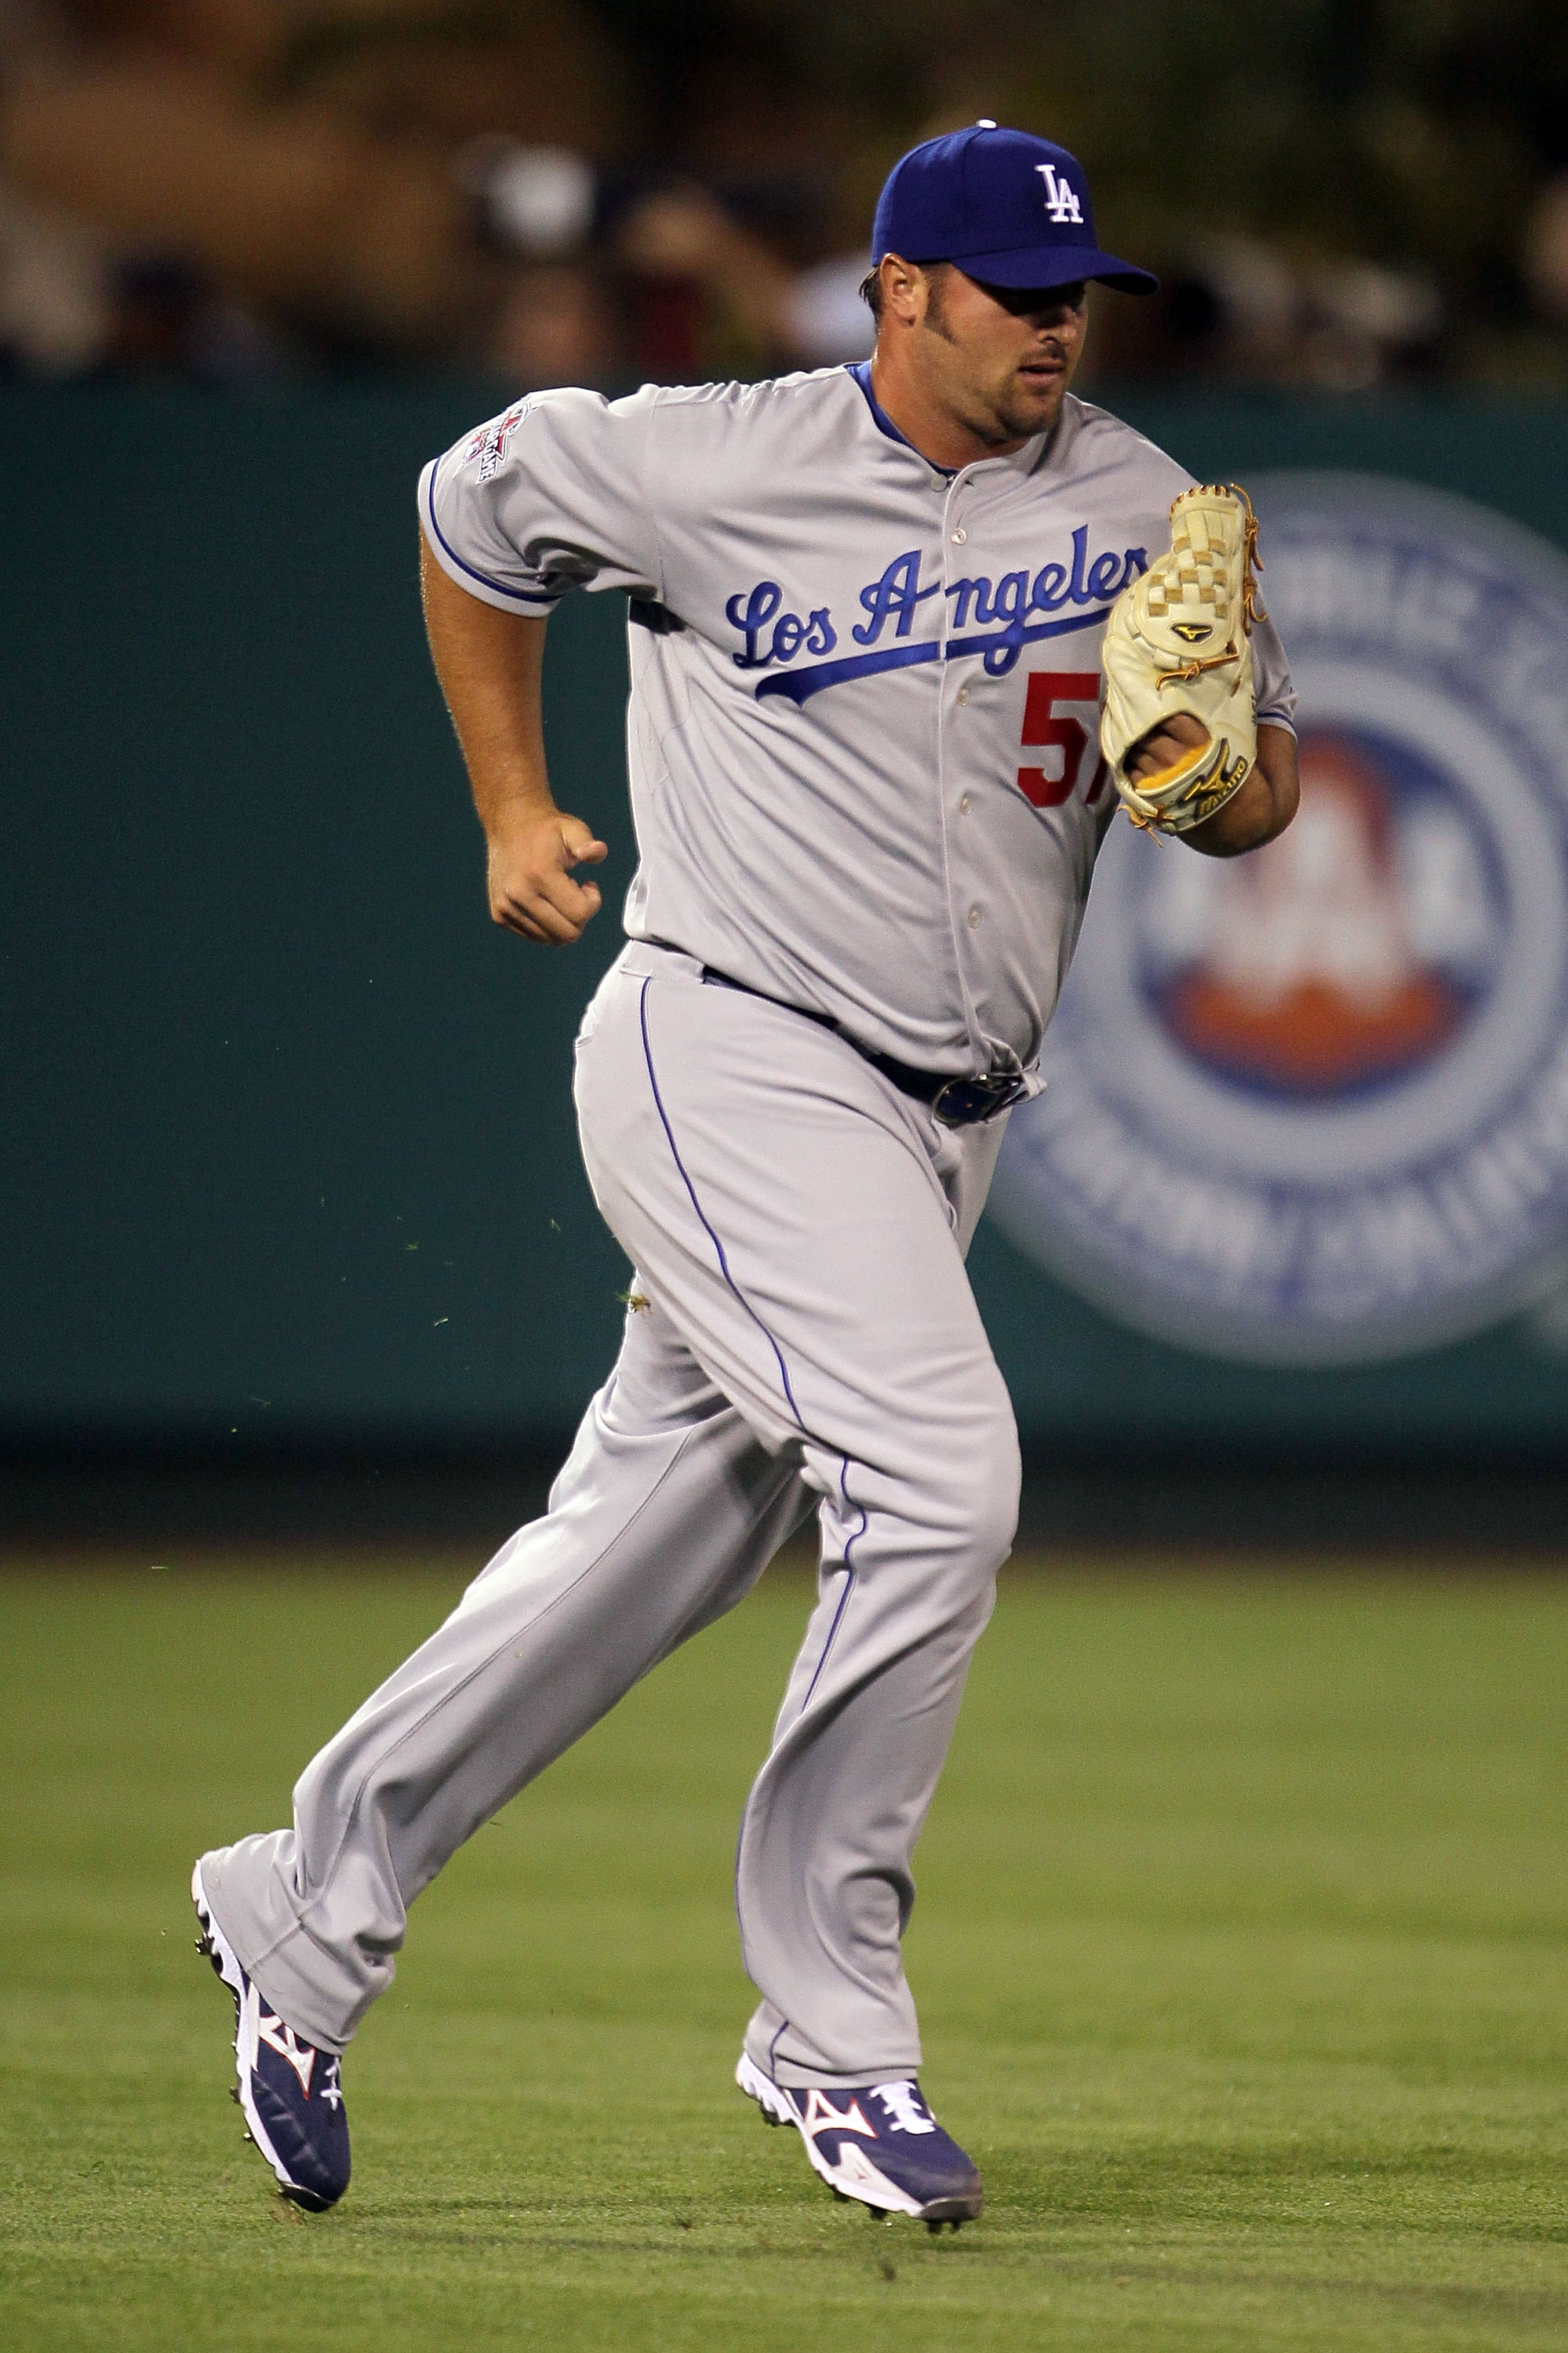 ANAHEIM, CA - JULY 13:  National League All-Star Jonathan Broxton #51 of the Los Angeles Dodgers runs in during the 81st MLB All-Star Game at Angel Stadium of Anaheim on July 13, 2010 in Anaheim, California.  (Photo by Jeff Gross/Getty Images)